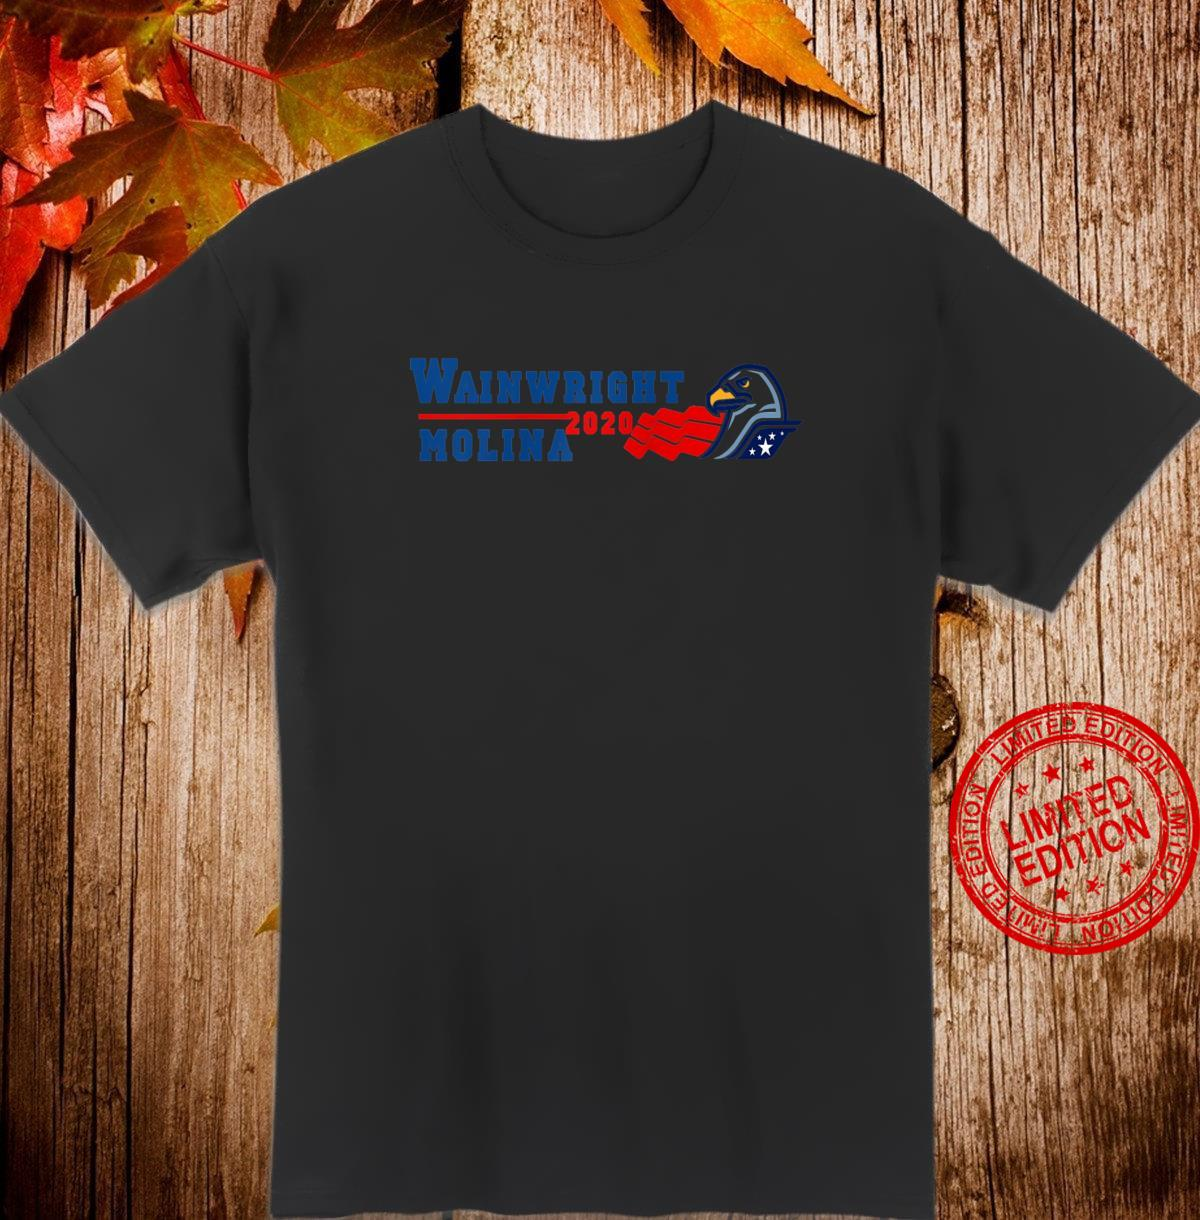 Wainwright Molina 2020 Shirt Wainwright Molina 2020 Shirt